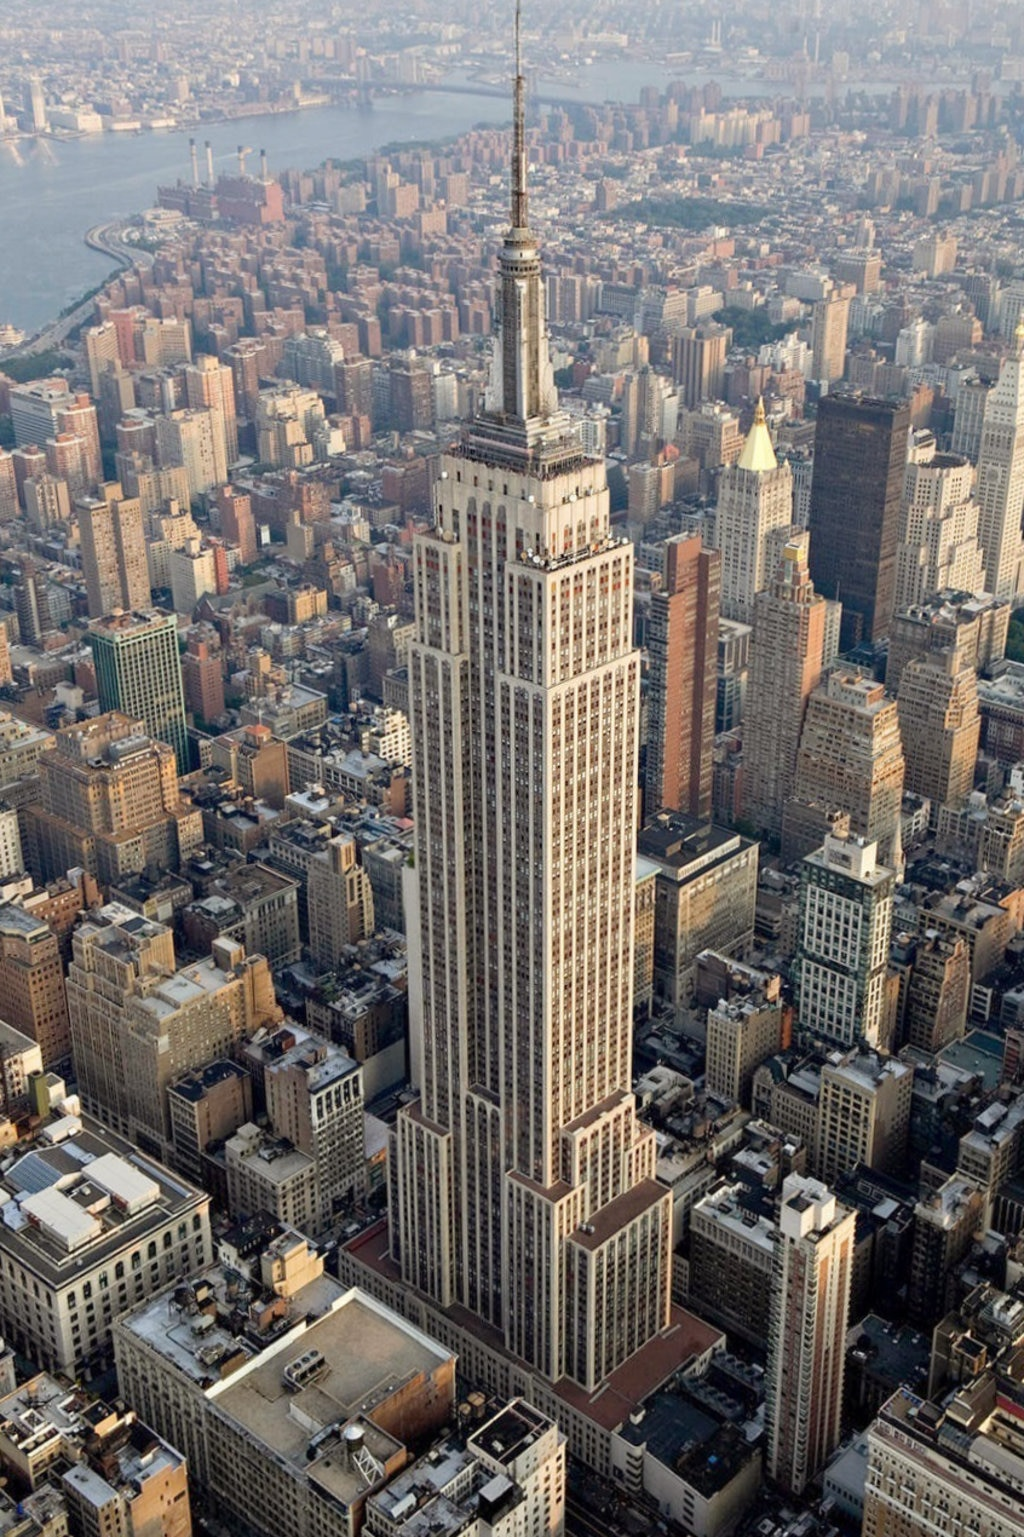 Empire_State_Building_%28aerial_view%29.jpg?1575384795